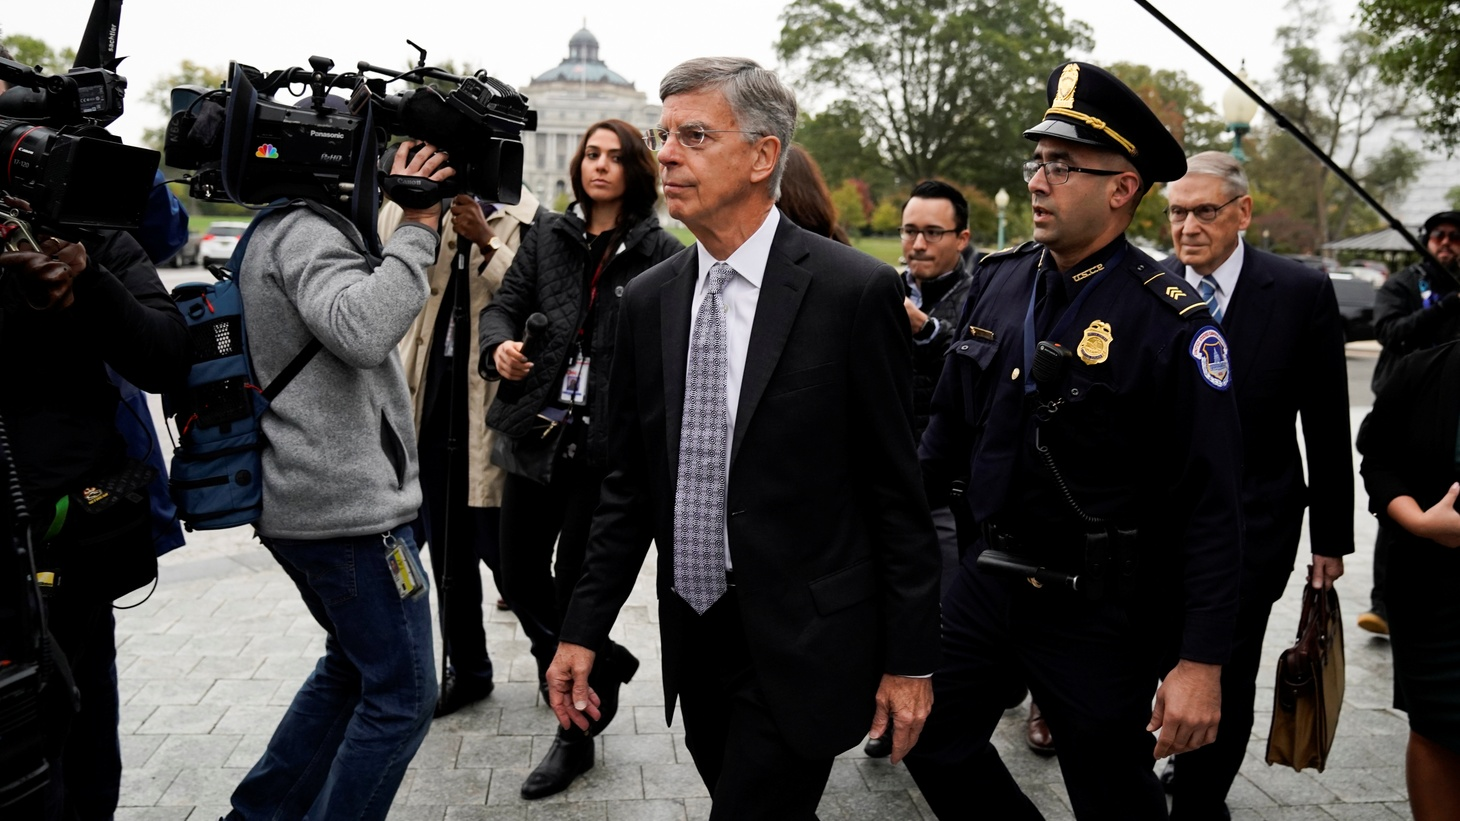 Acting U.S. ambassador to Ukraine Bill Taylor arrives to testify at a closed-door deposition as part of the U.S. House of Representatives impeachment inquiry led by the House Intelligence, House Foreign Affairs and House Oversight and Reform Committees on Capitol Hill in Washington, U.S., October 22, 2019.